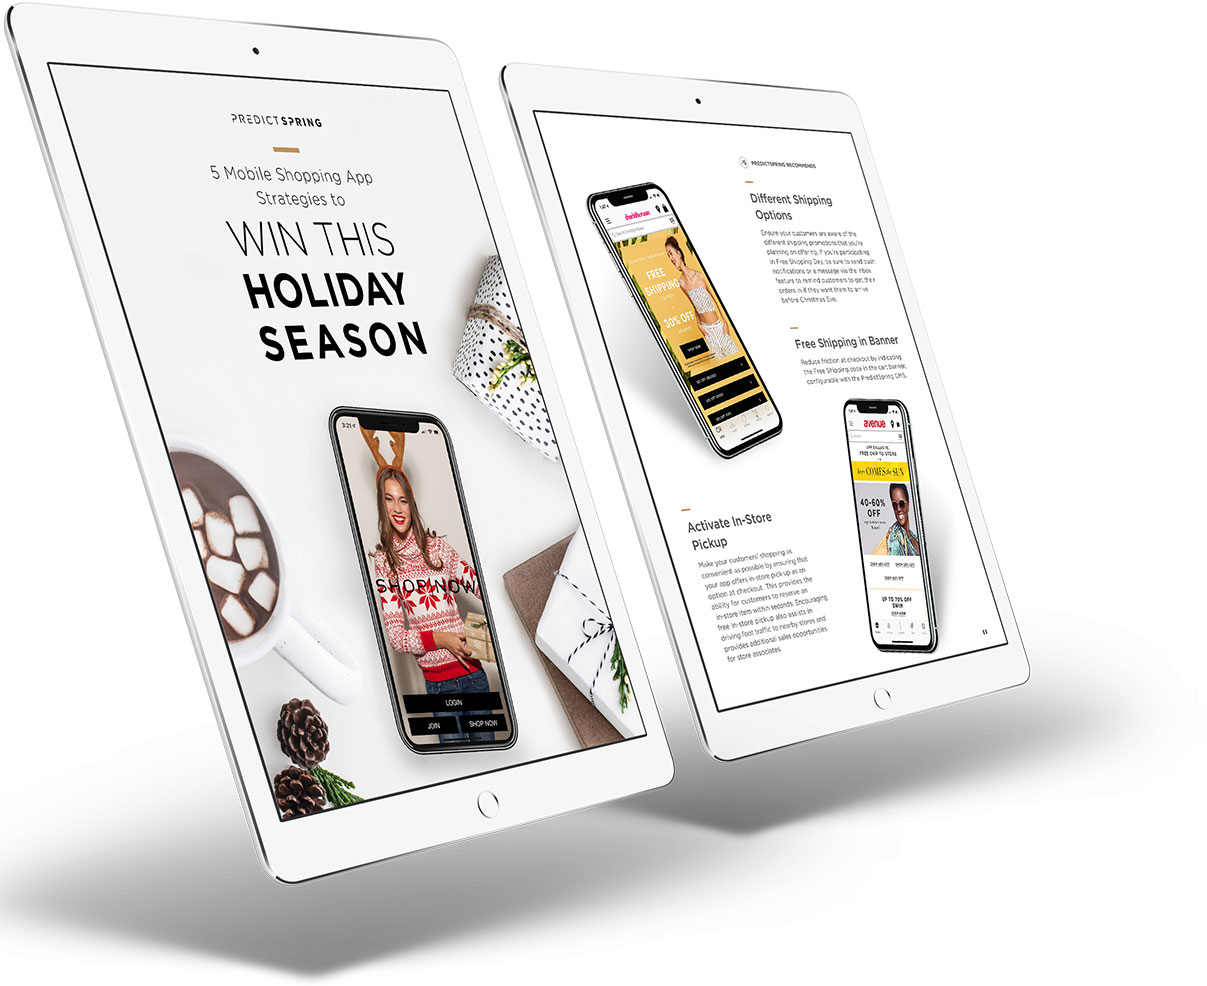 5 Mobile Shopping App Strategies to win this holiday season eBook - PredictSpring